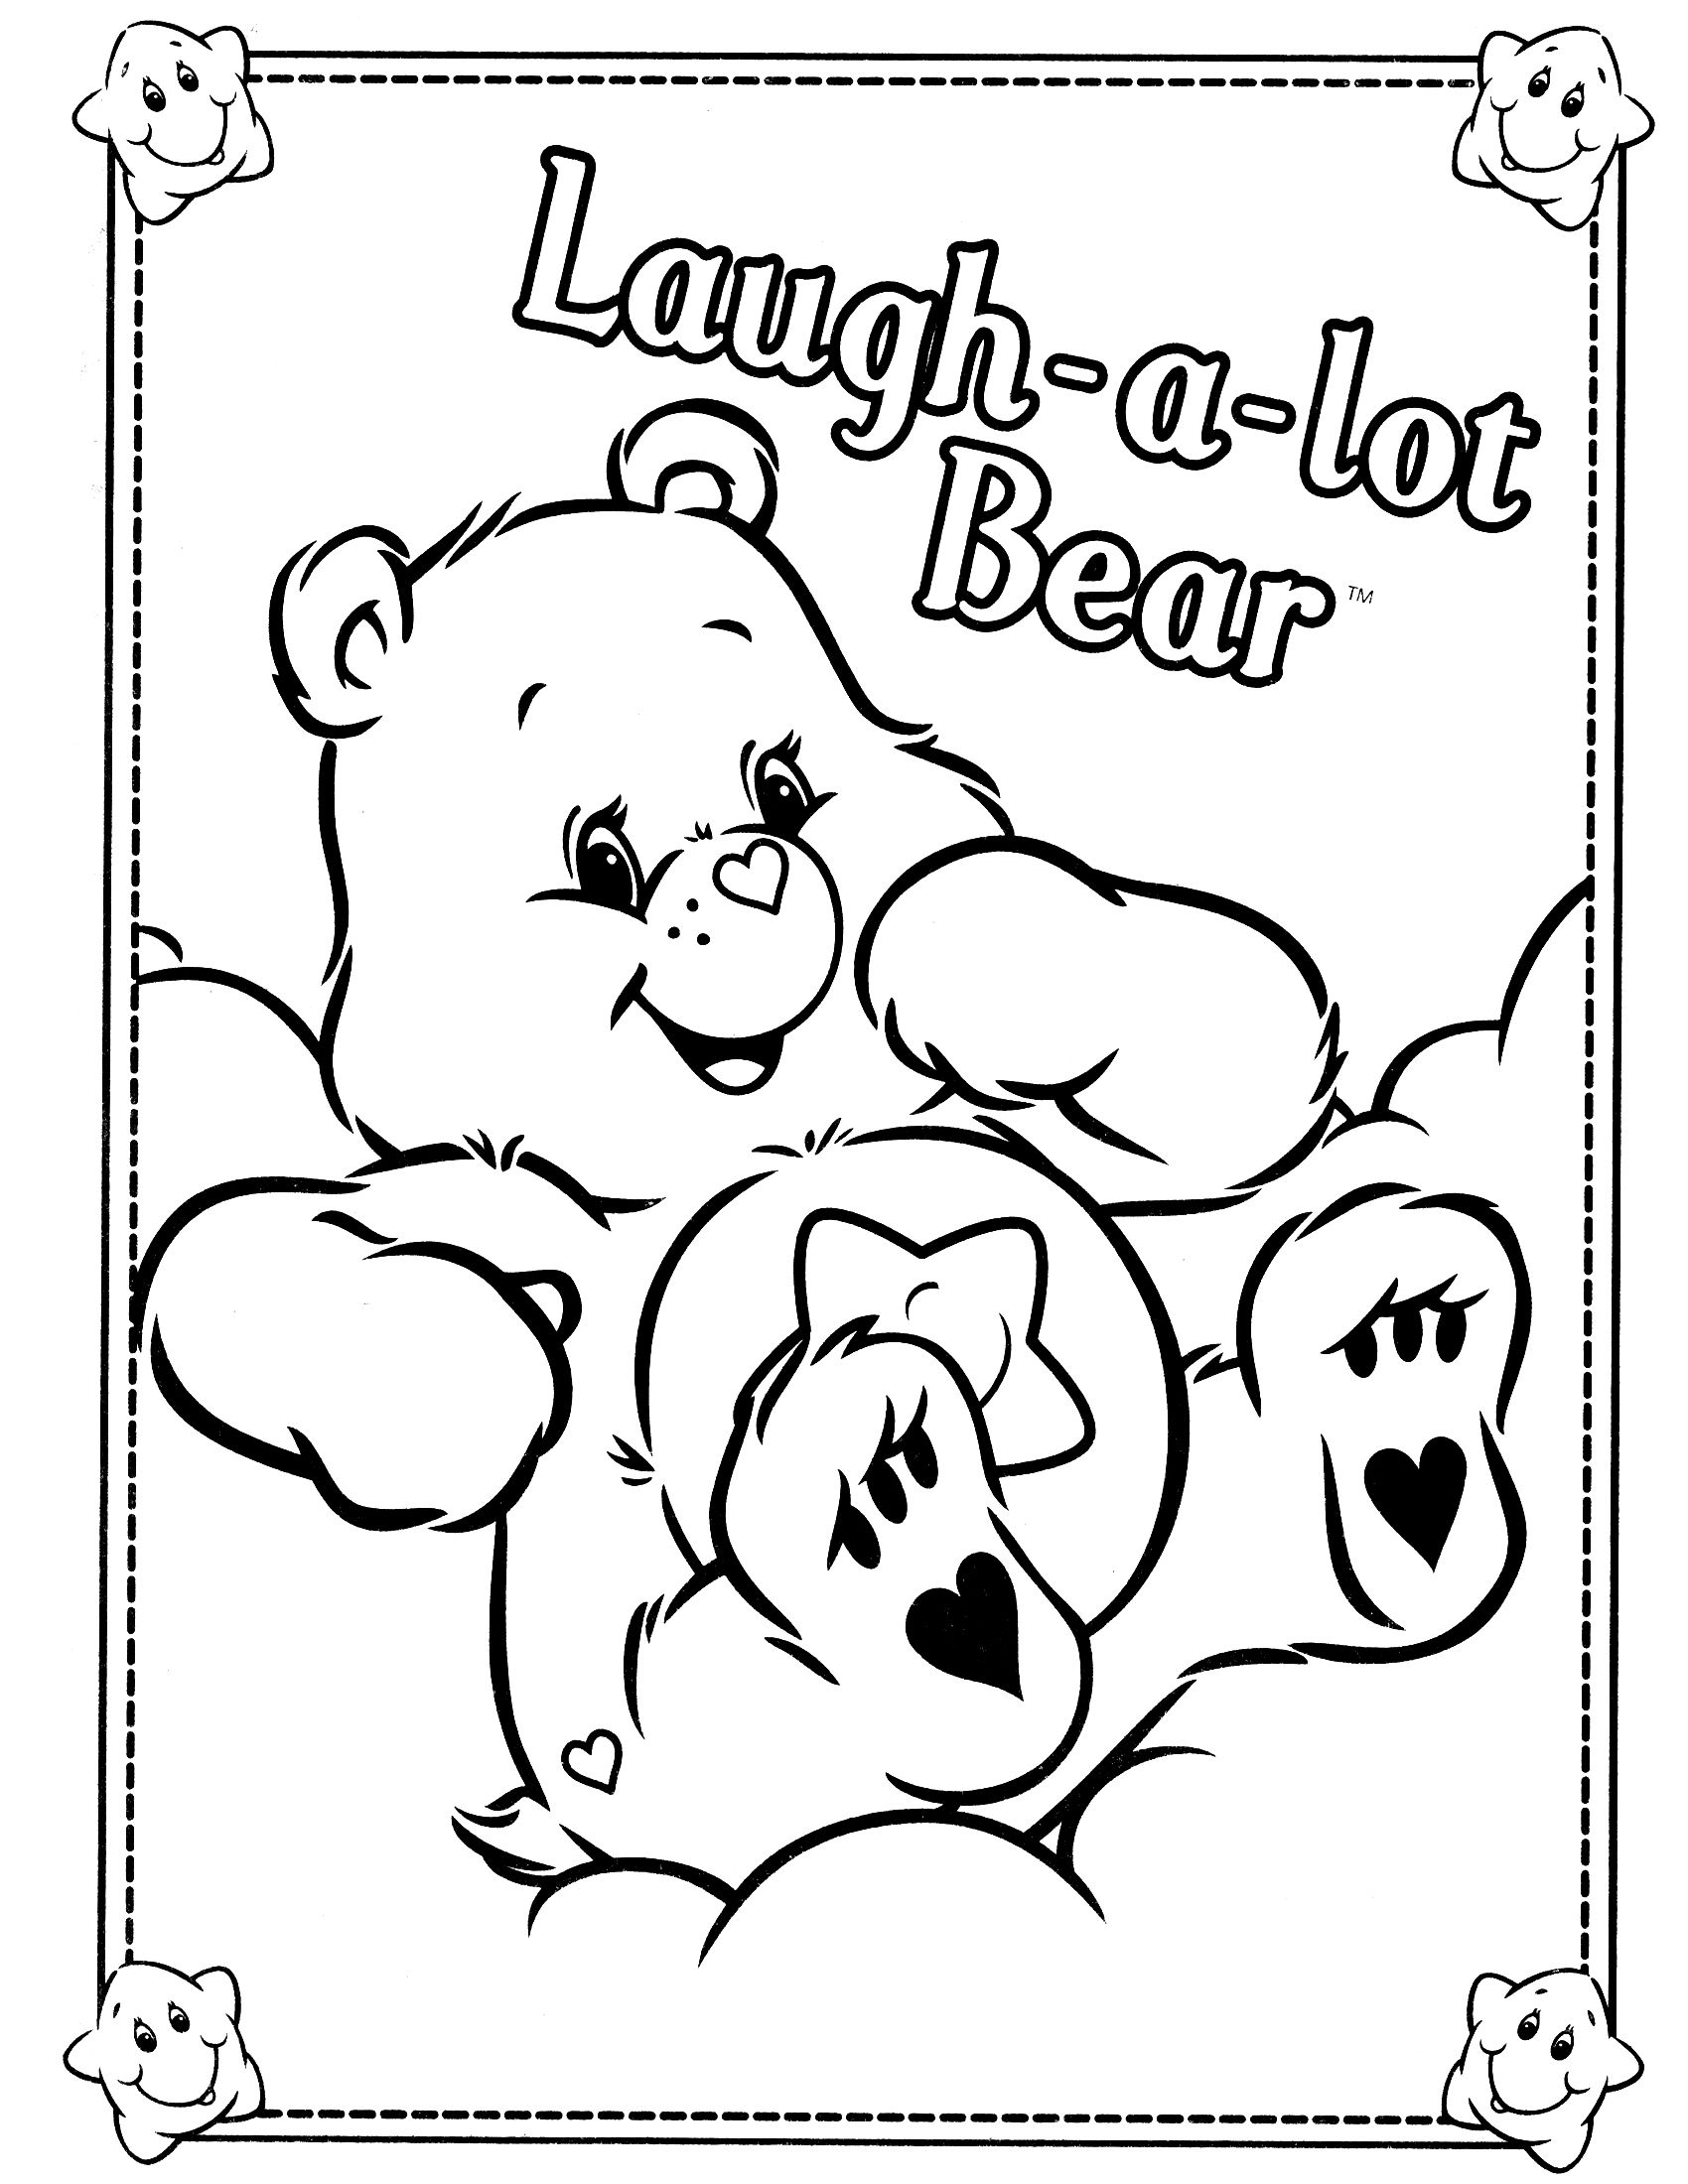 Care Bears Coloring Page Tagged With Care Bear Coloring Pages 5 - care bear colouring pages to print